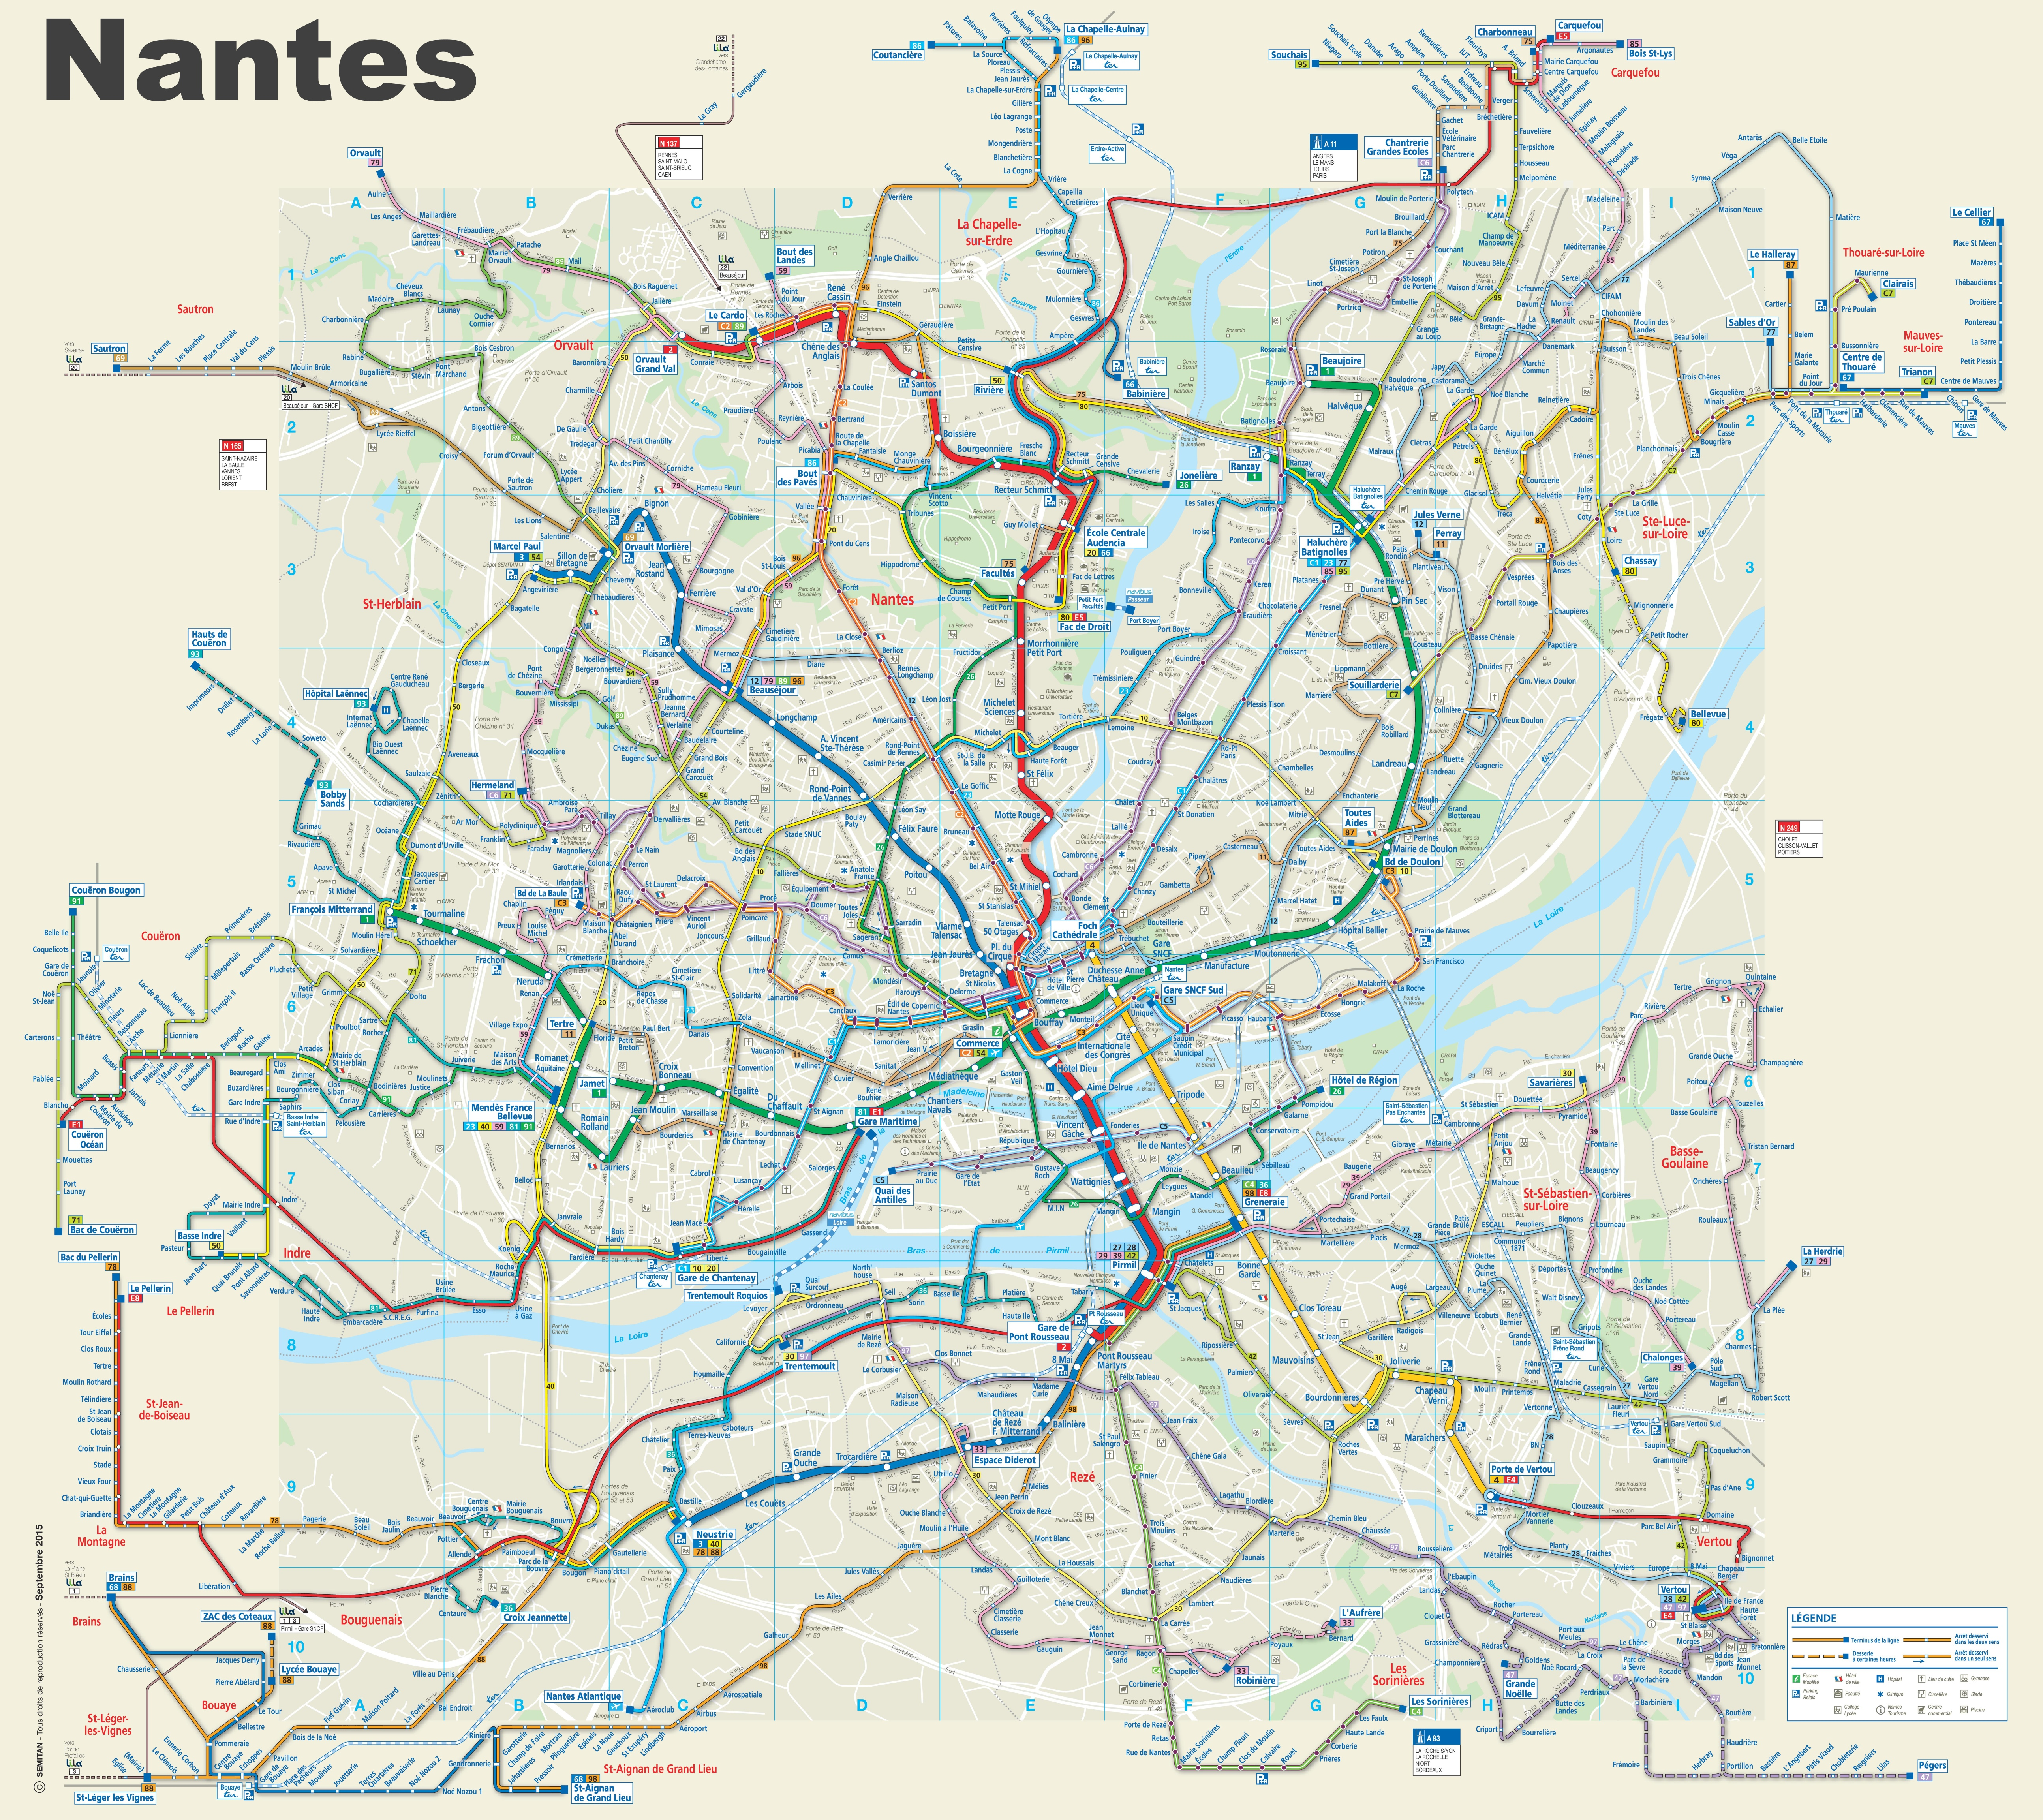 Bus Poitiers Nantes Nantes Transport Map